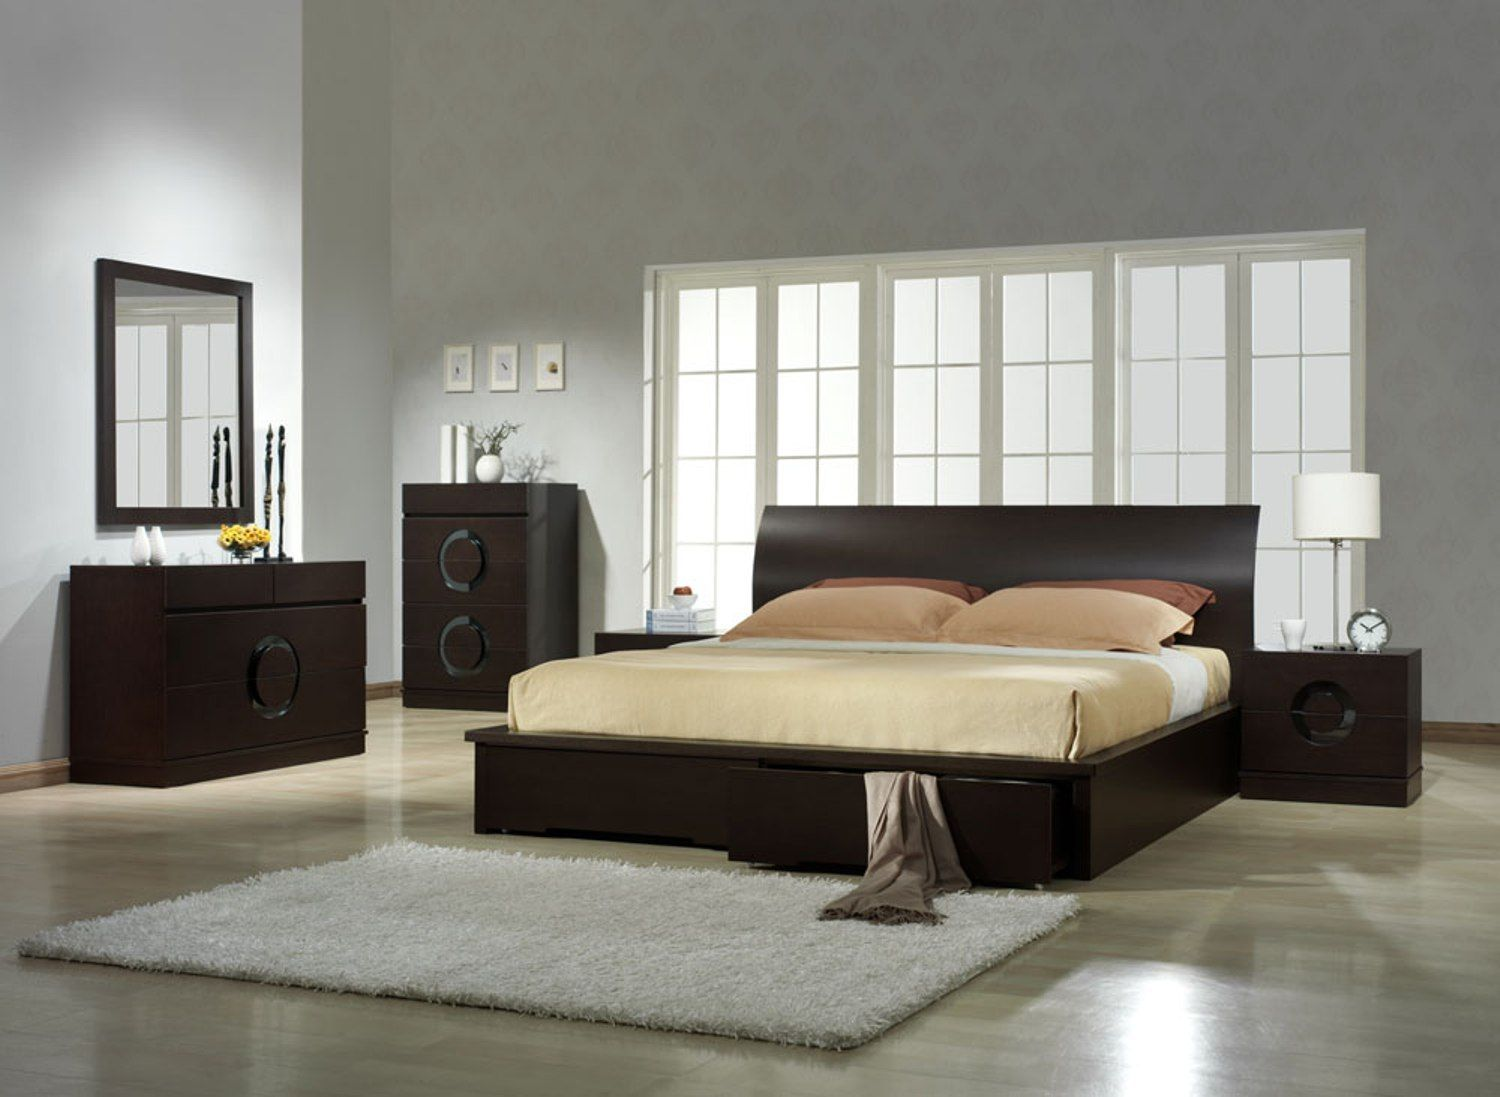 zen style bed | bedroom and living room image collections